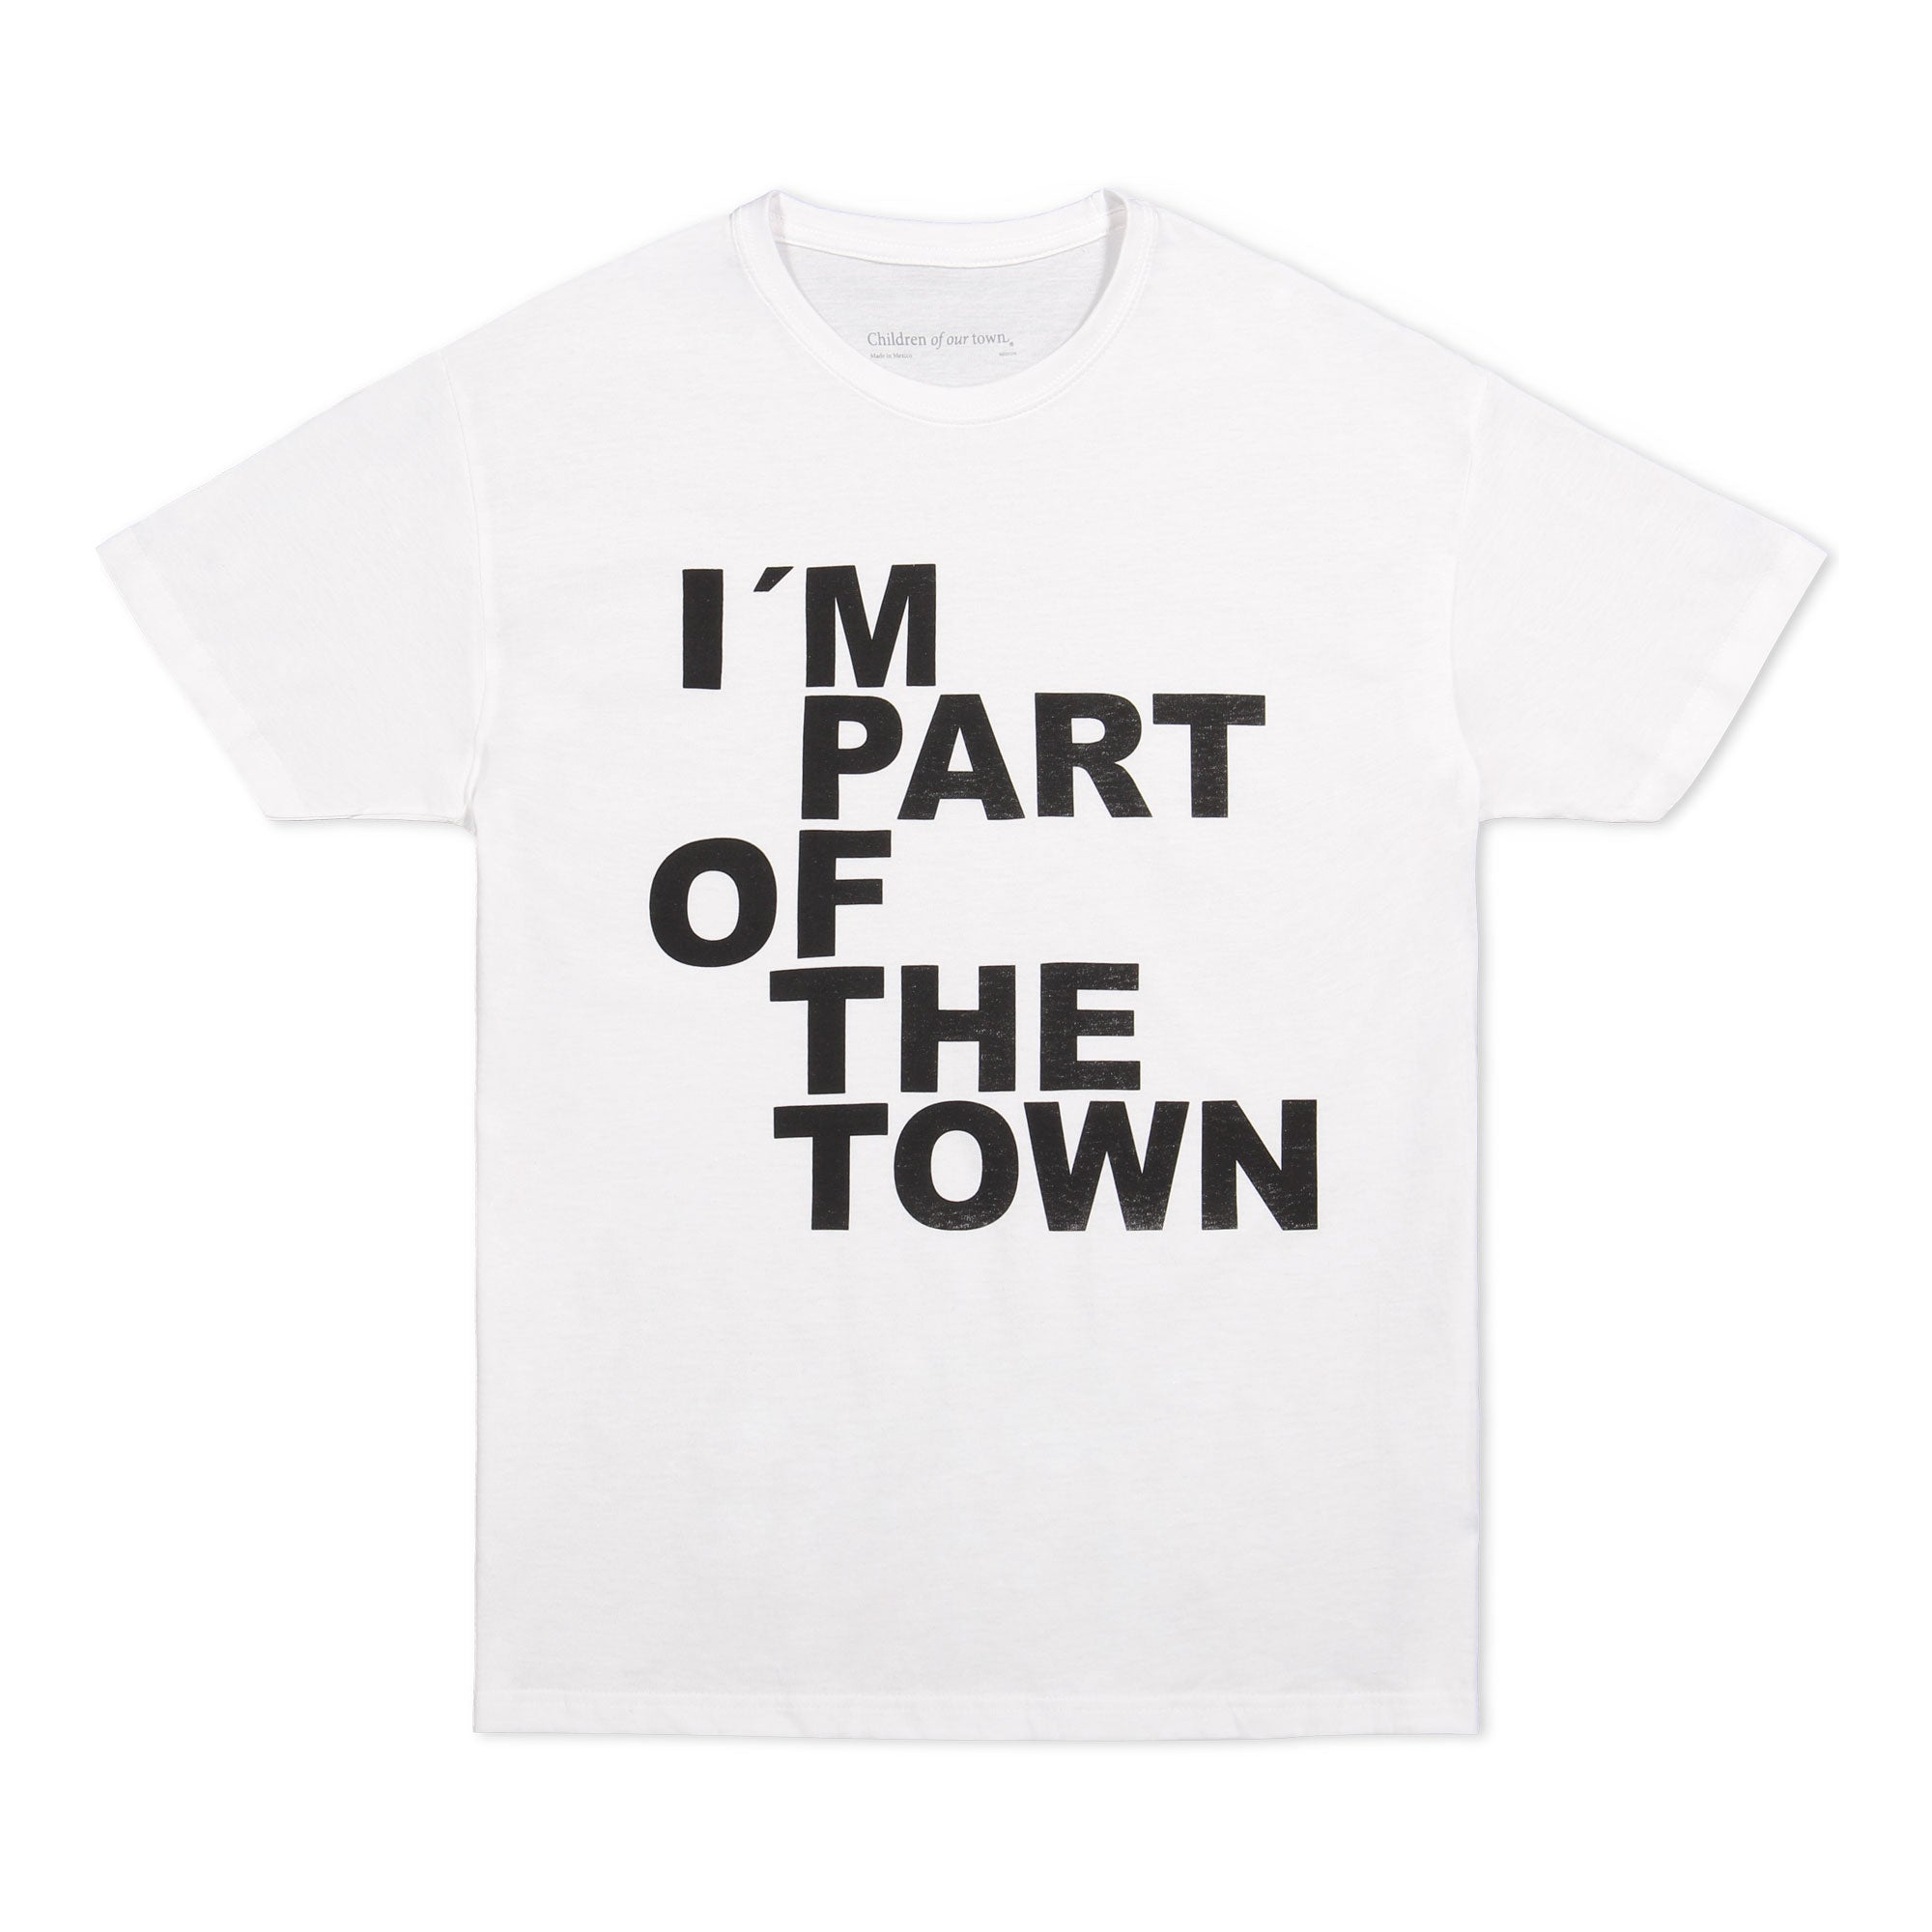 I'm part of the town